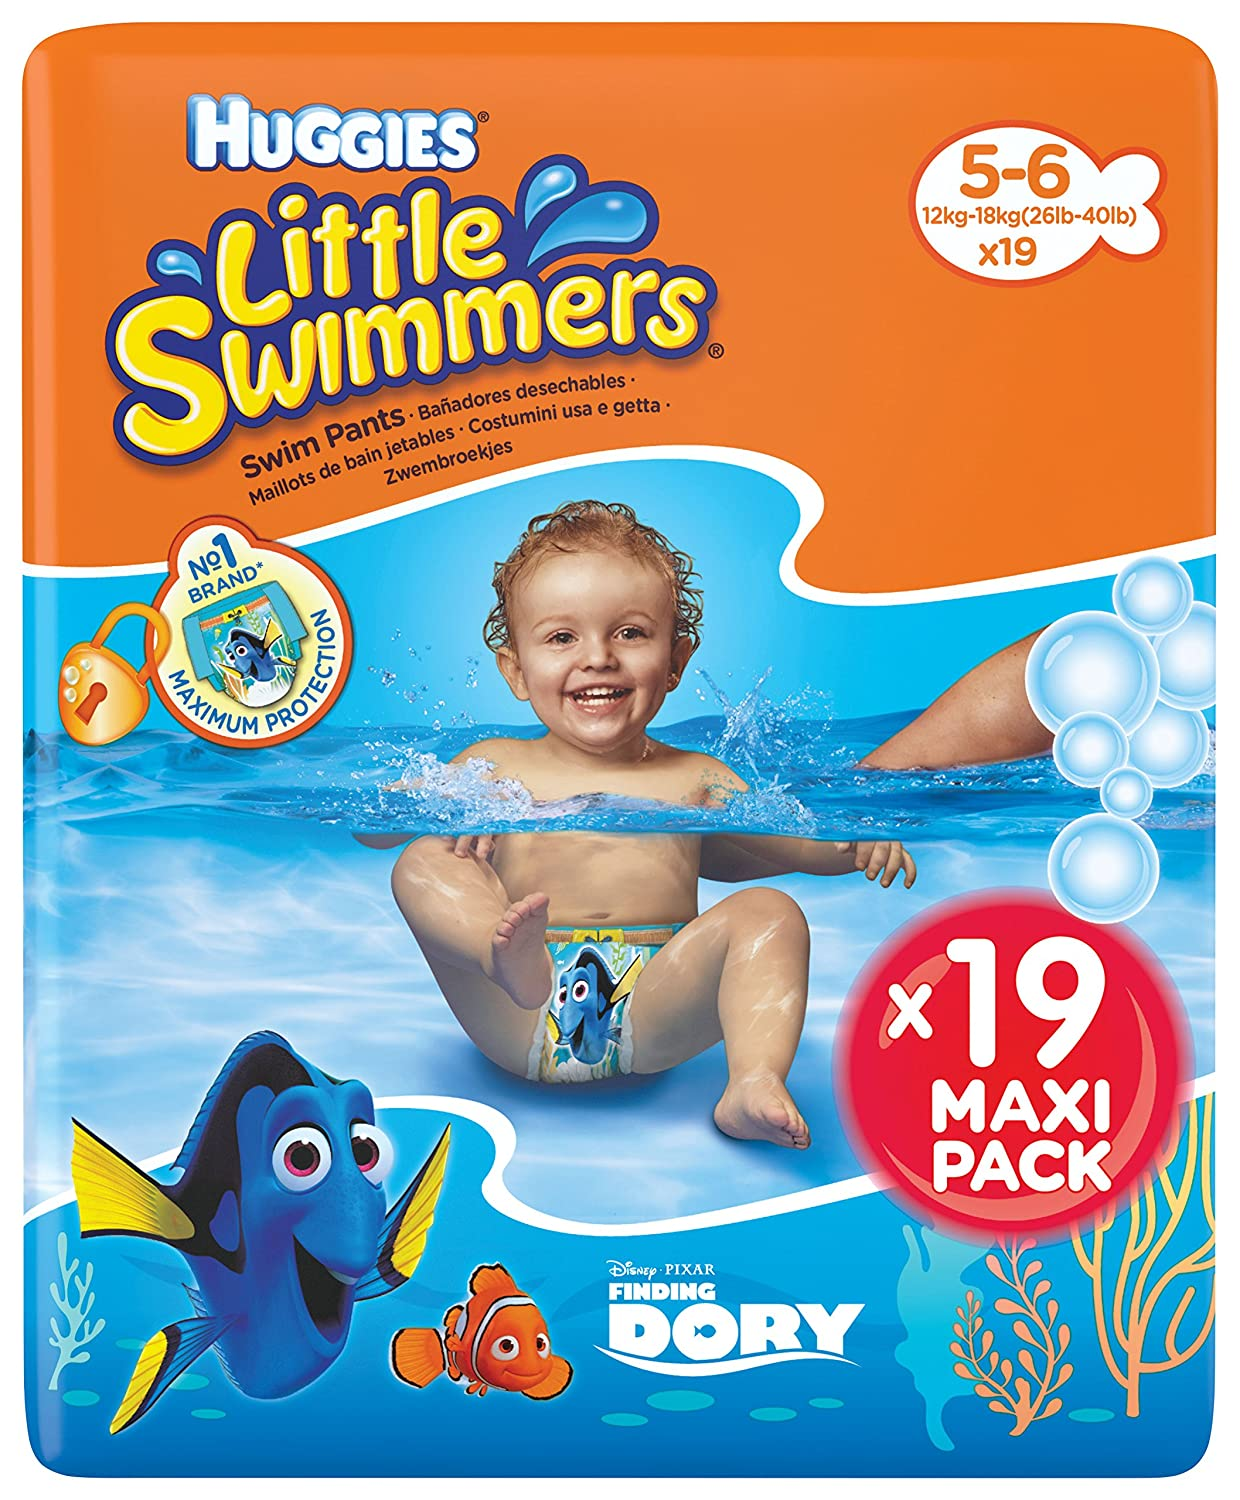 Huggies Little Swimmers Nappies, Size 5-6 (12-18kg),1Pack Containing 19Pieces Kimberly-Clark 5029053538433